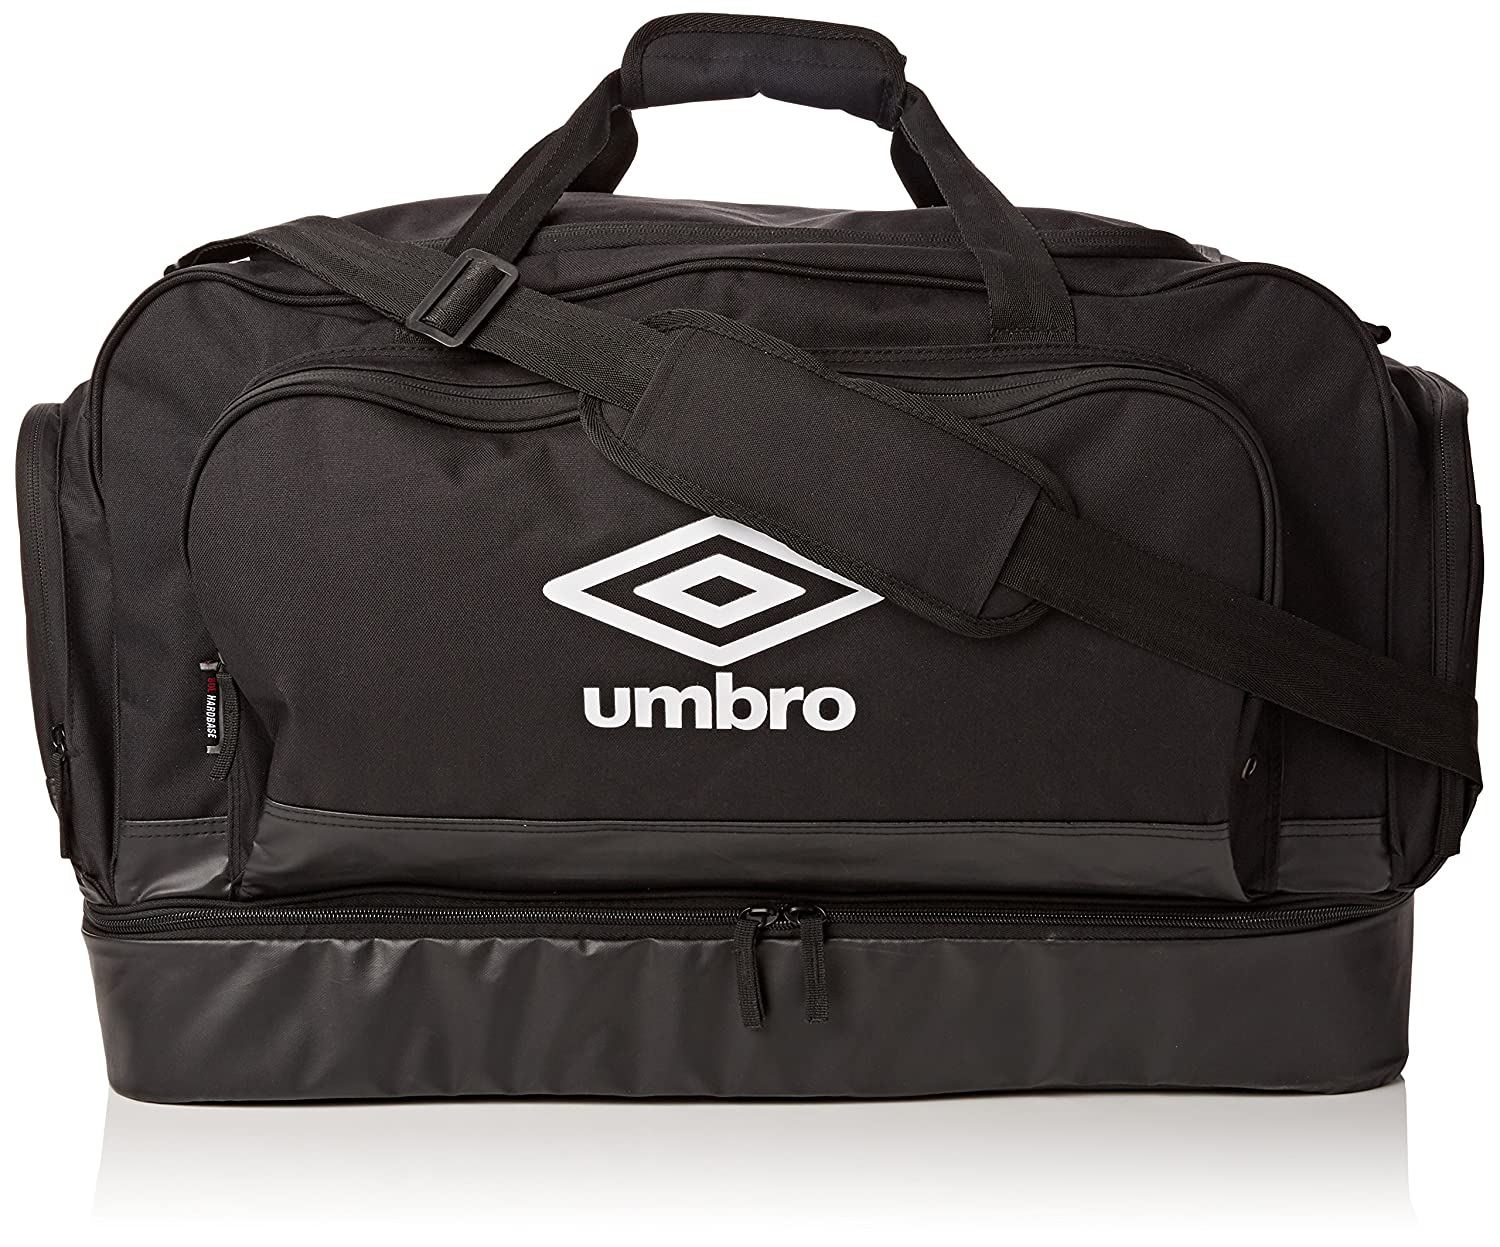 Umbro Unisex's Hard Base Football Bag-Black, Medium